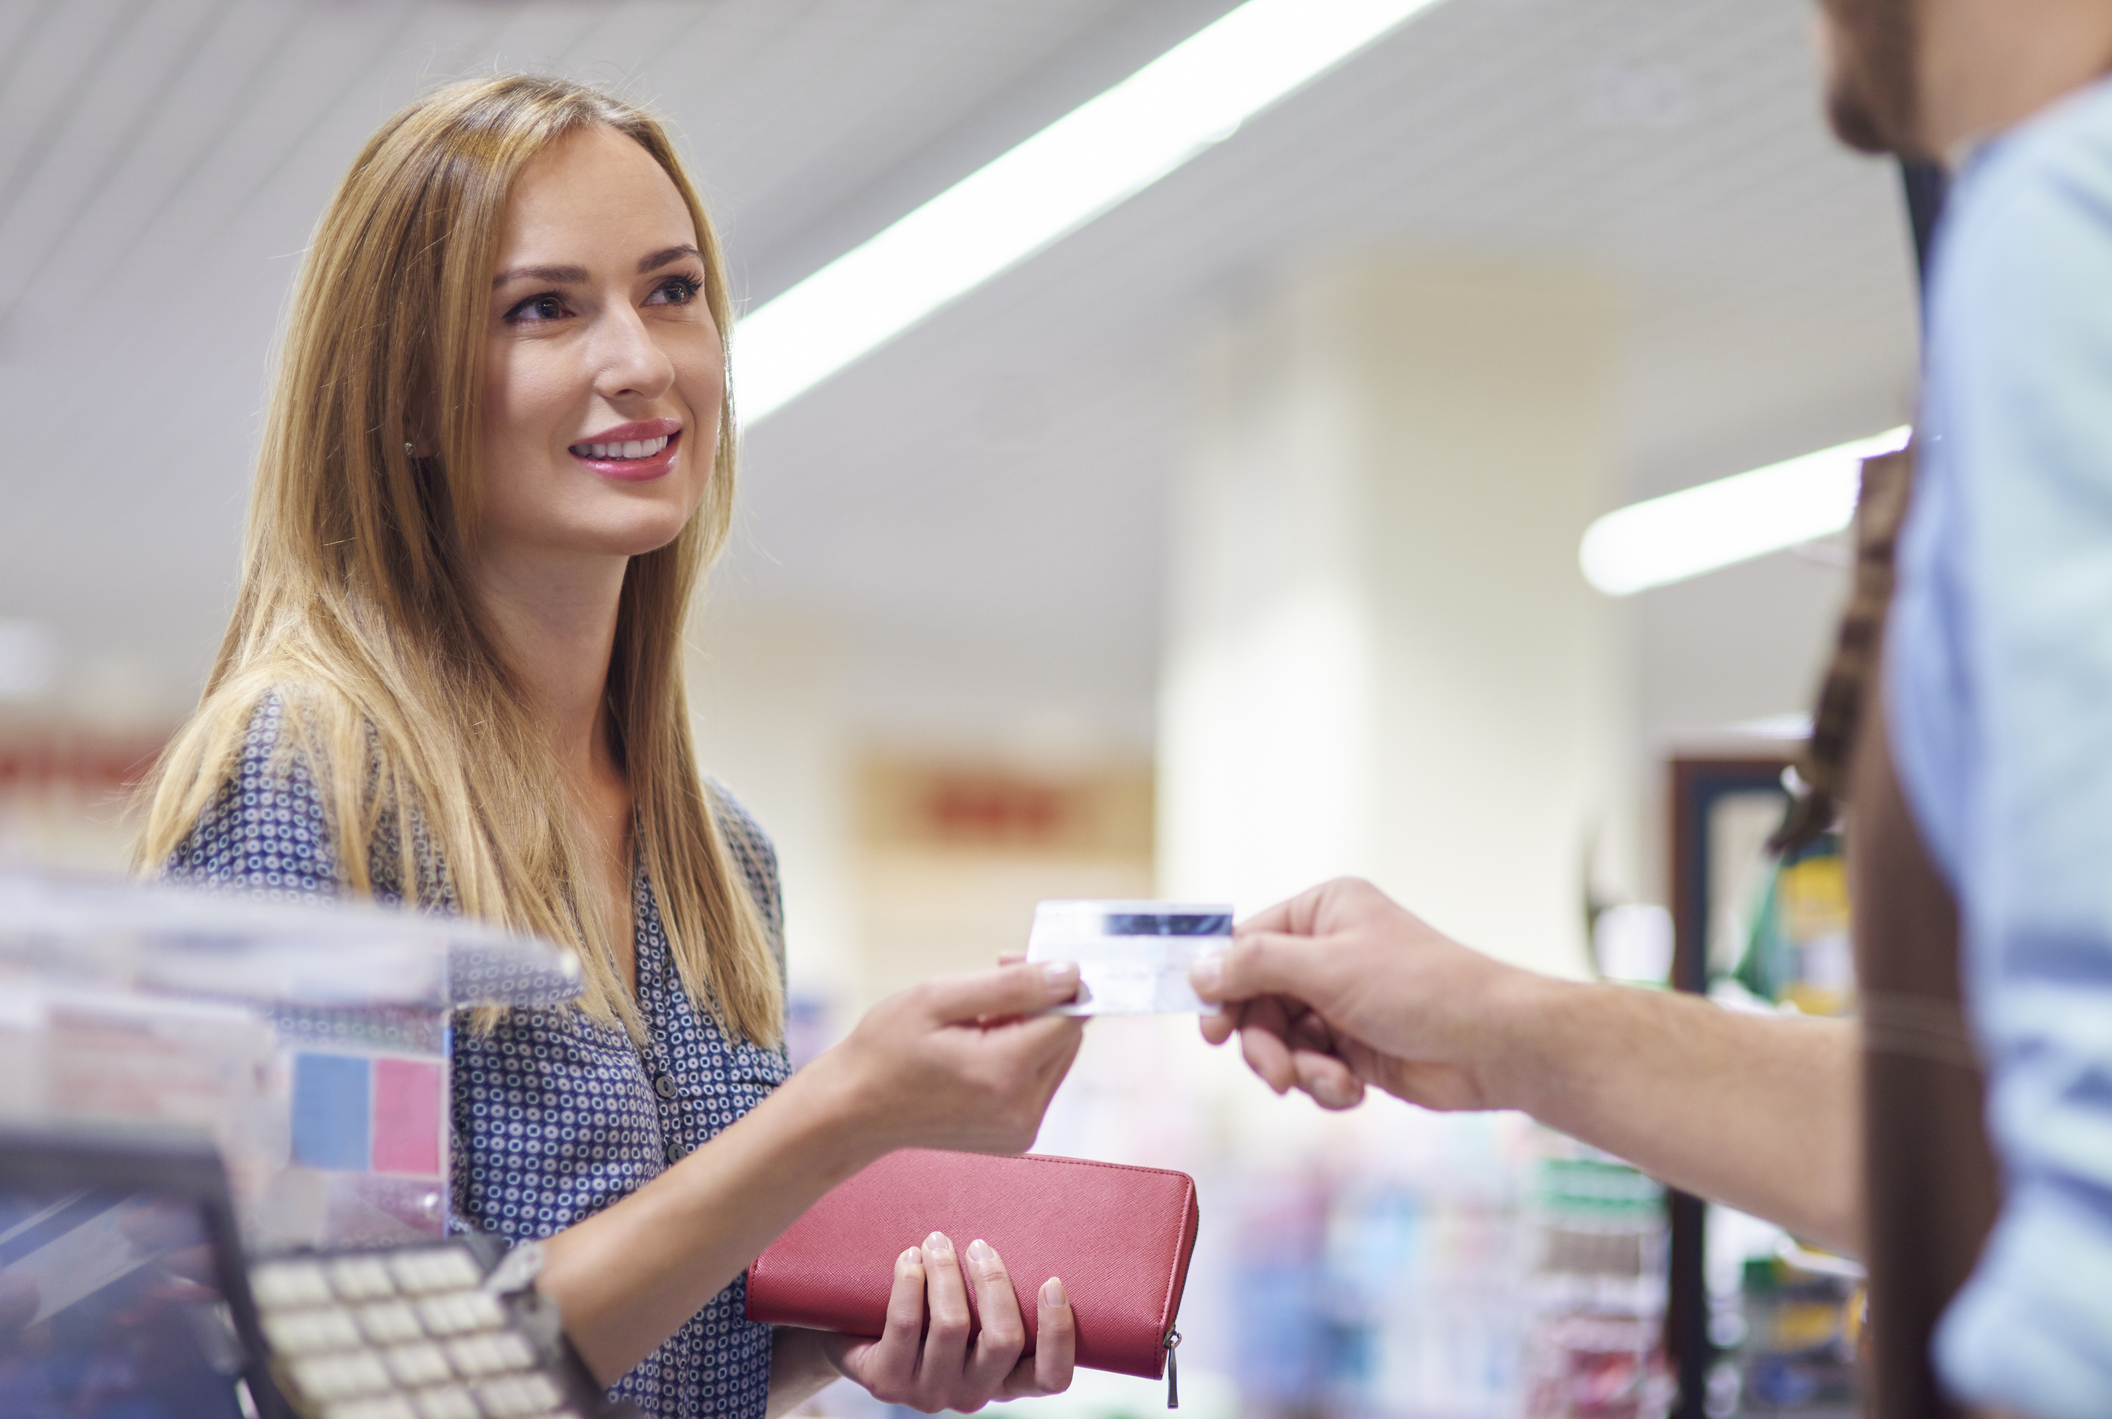 woman in a shop using a credit card to pay